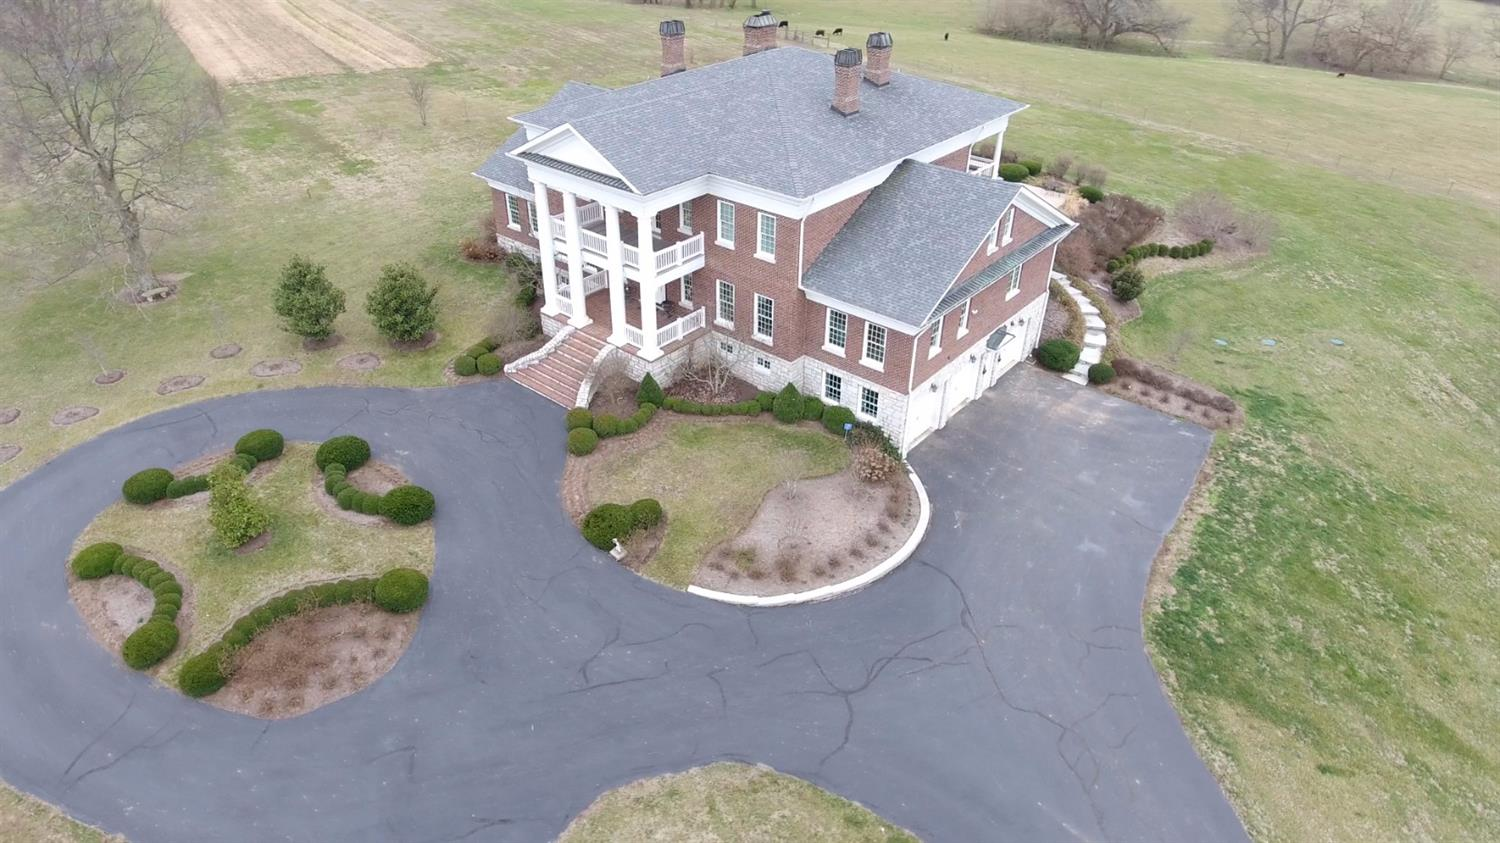 Beautiful%20home%20overlooking%20123+/-%20acres%20of%20bluegrass.%20%20Home%20was%20built%20in%202004%20with%20craftsmanship%20reminiscent%20of%20how%20homes%20should%20be%20built.%20%20Details,%20details.%20%20Full%20basement%20with%20recreation%20room,%20kitchen,%20%20fireplace,%20pool%20table%20and%20sauna.%20%20First%20floor%20has%20elegant%20but%20comfortable%20interior.%20First%20floor%20master%20has%20direct%20access%20to%20the%20covered%20porch%20overlooking%20the%20in%20ground%20pool.%20%20Family%20room%20has%20coffered%20ceilings%20and%20fireplace.%20%20Total%20of%205%20fireplaces.%20%20Lounging%20areas%20on%202nd%20floor%20landing%20and%20the%20lower%20level.%20%20Double-decker%20covered%20porches%20front%20and%20back.%20%20In-ground%20pool%20and%20hot%20tub%20with%20waterfall%20to%20the%20main%20pool%20with%20views%20for%20miles.%206%20bedrooms%206%20full%20baths%20and%203%20half%20baths.%20%20All%20bedrooms%20have%20en-suite%20baths.%20%206%20bent%20barn%20for%20equipment%20and%20storage.%20%205+/-%20acres%20for%20vineyards%20with%20approximately%202%20acres%20producing.%20%202-acre%20pond.%20%20Currently%20raising%20cattle.%20%20Lots%20of%20wildlife.%20%20Gently%20rolling%20fertile%20farmland.%20%20Well%20located%20in%20Woodford%20County%20Kentucky%20south%20of%20Versailles%20off%20of%20Troy%20Pike.